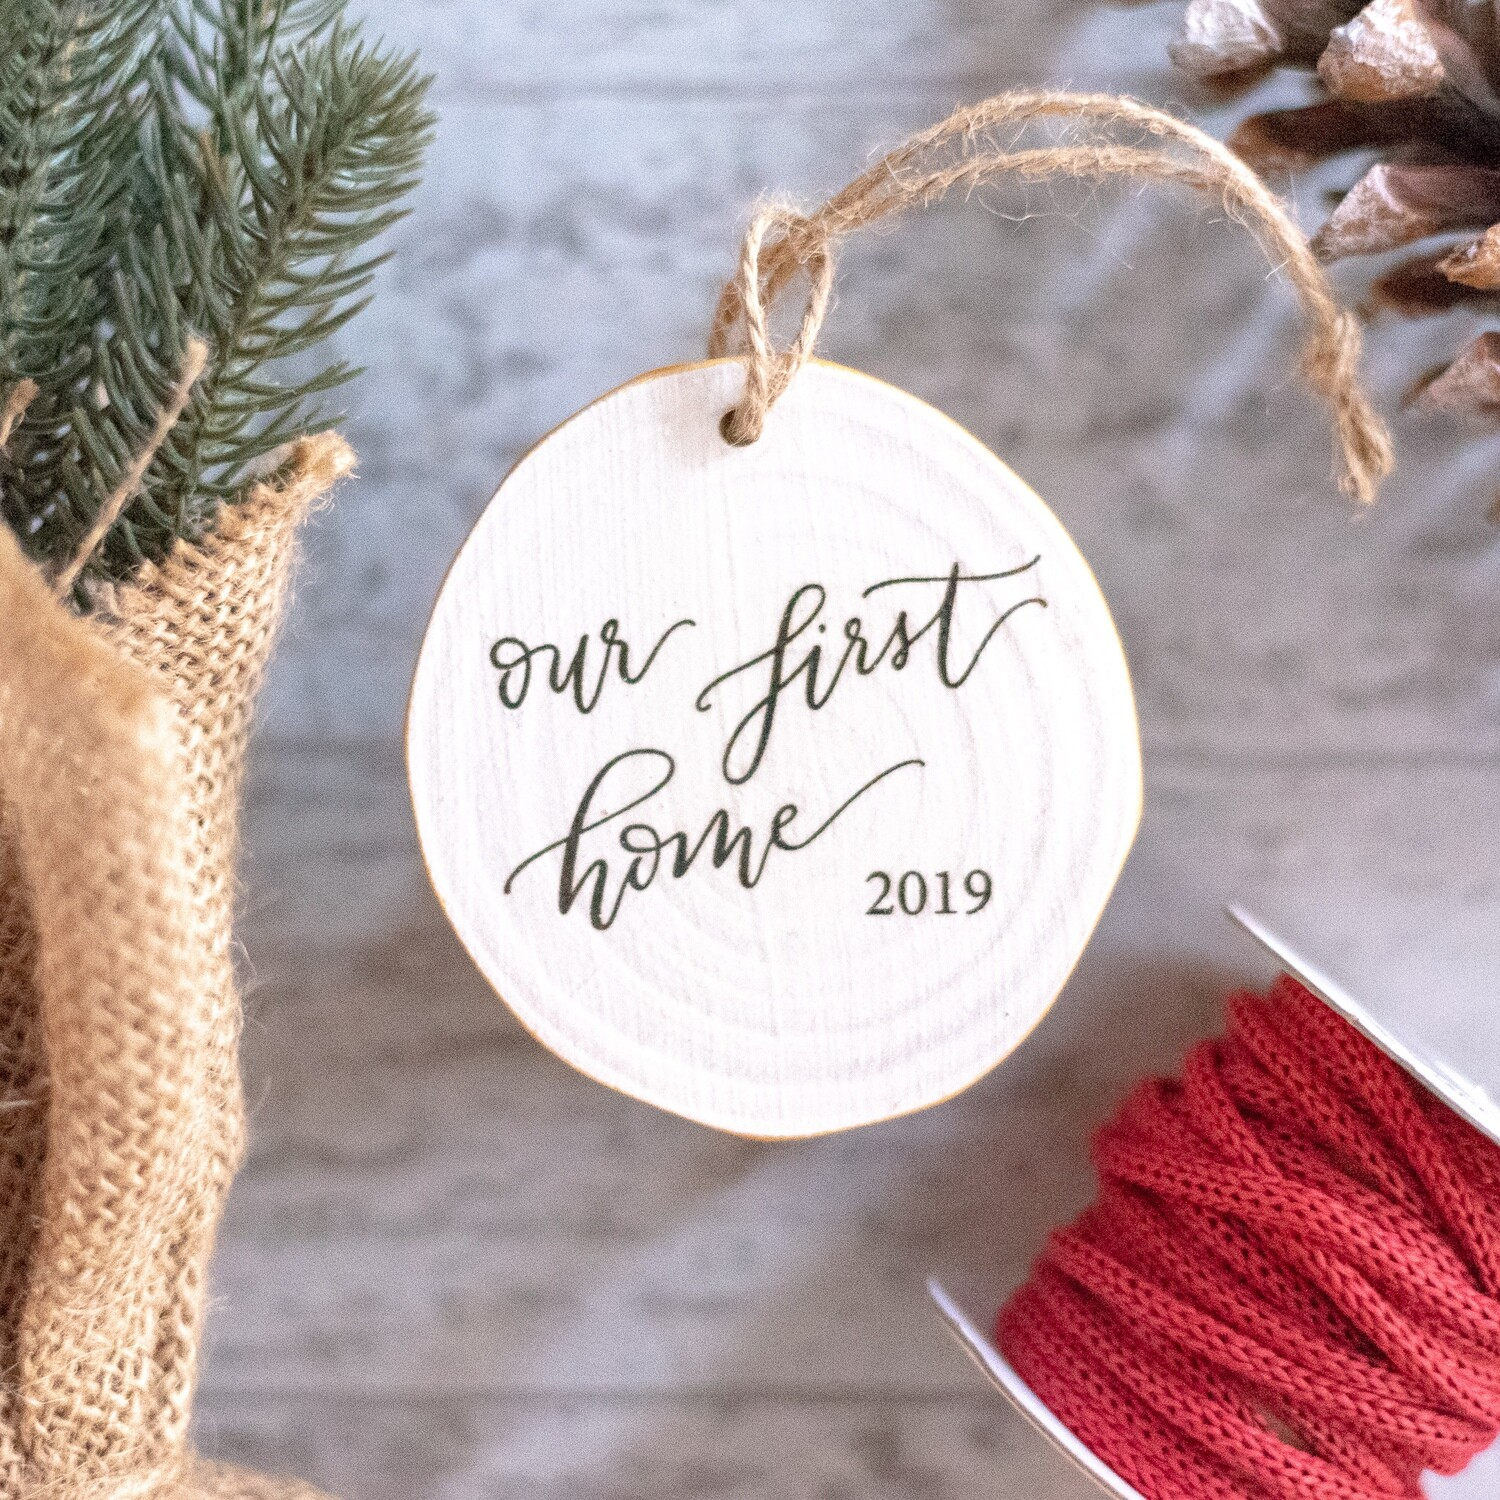 Our First Home 2019